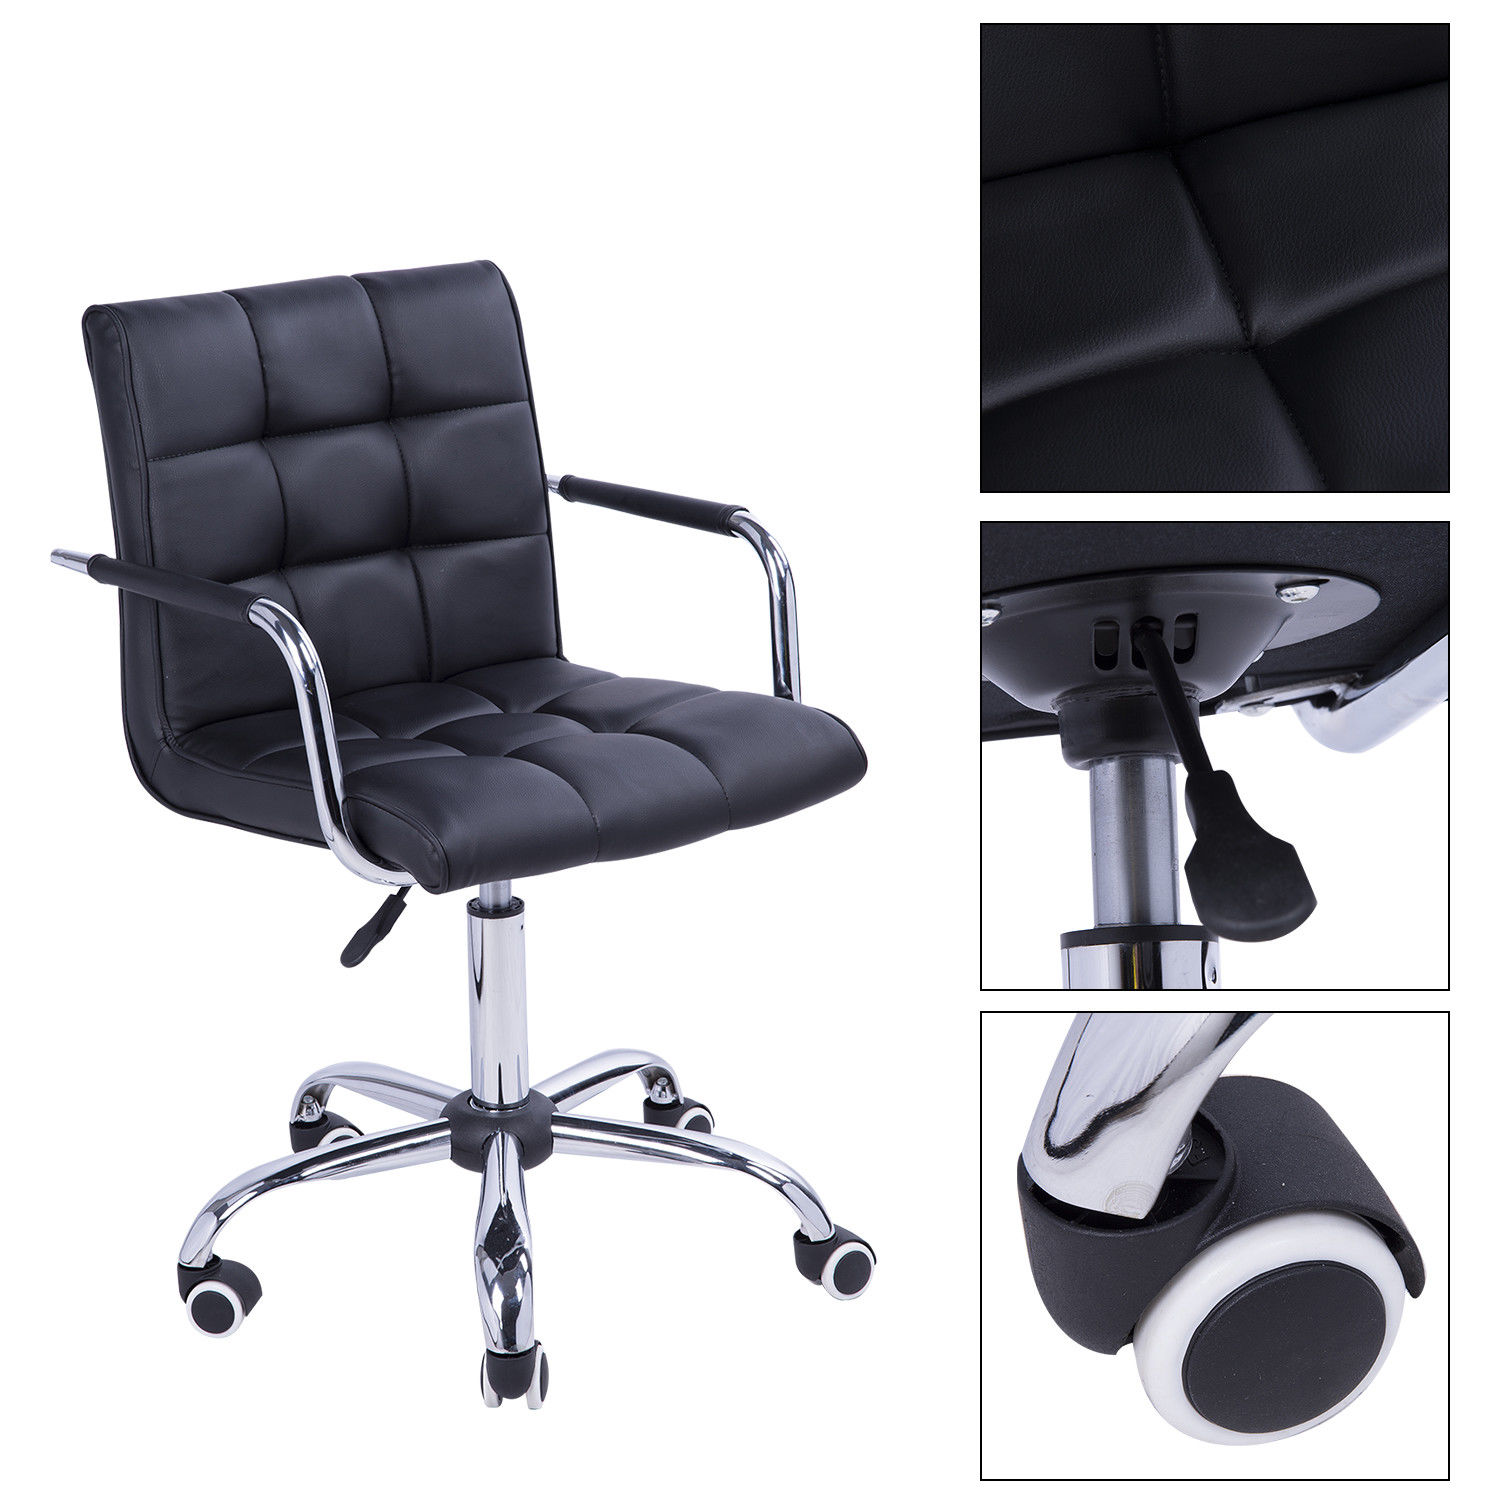 Details about Midback Executive Modern Office Chair Computer Desk Task PU  Leather Swivel